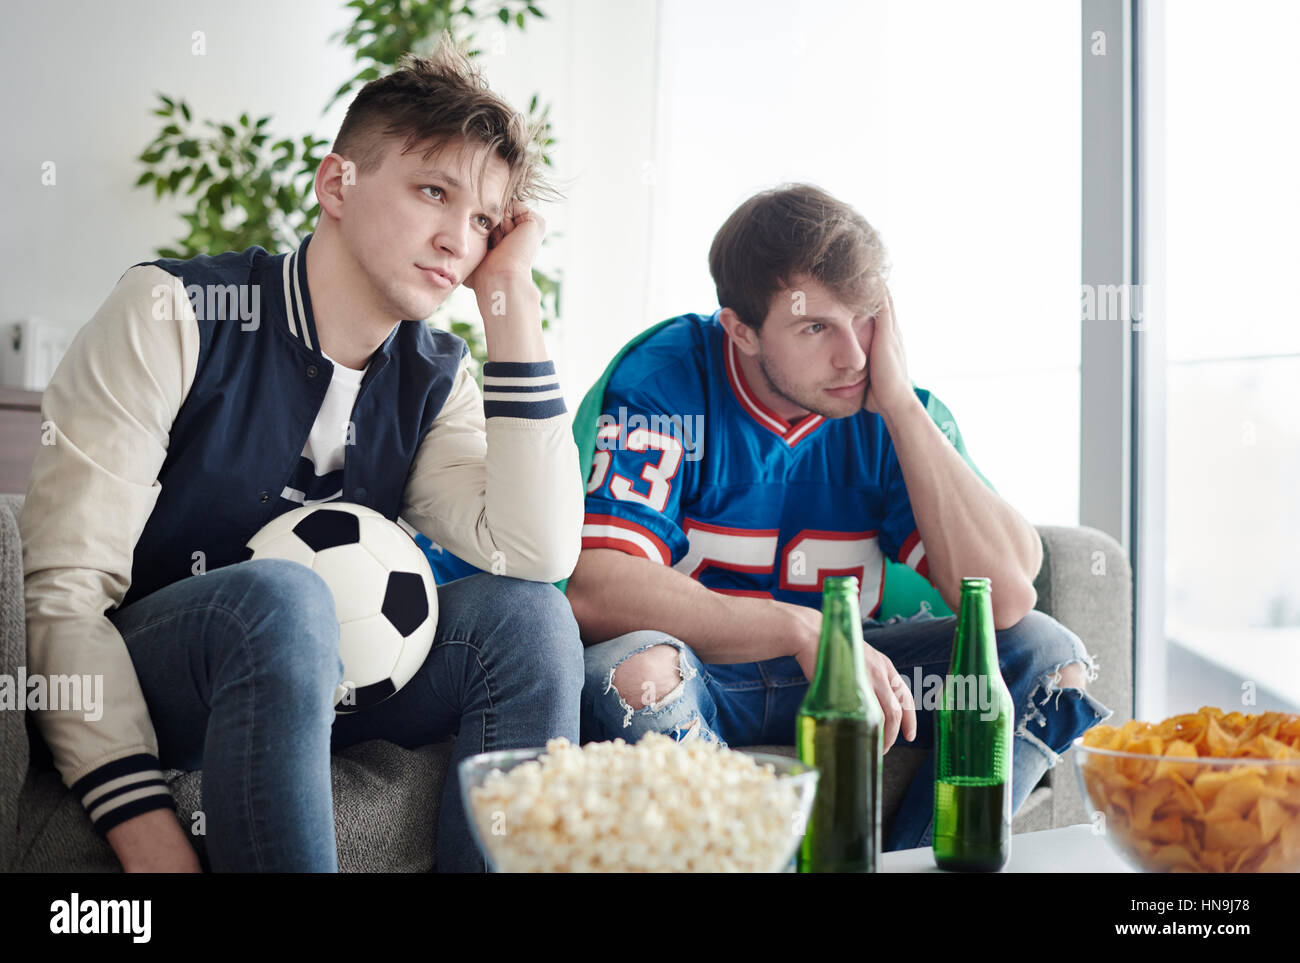 Unhappy and very dissatisfied mates - Stock Image